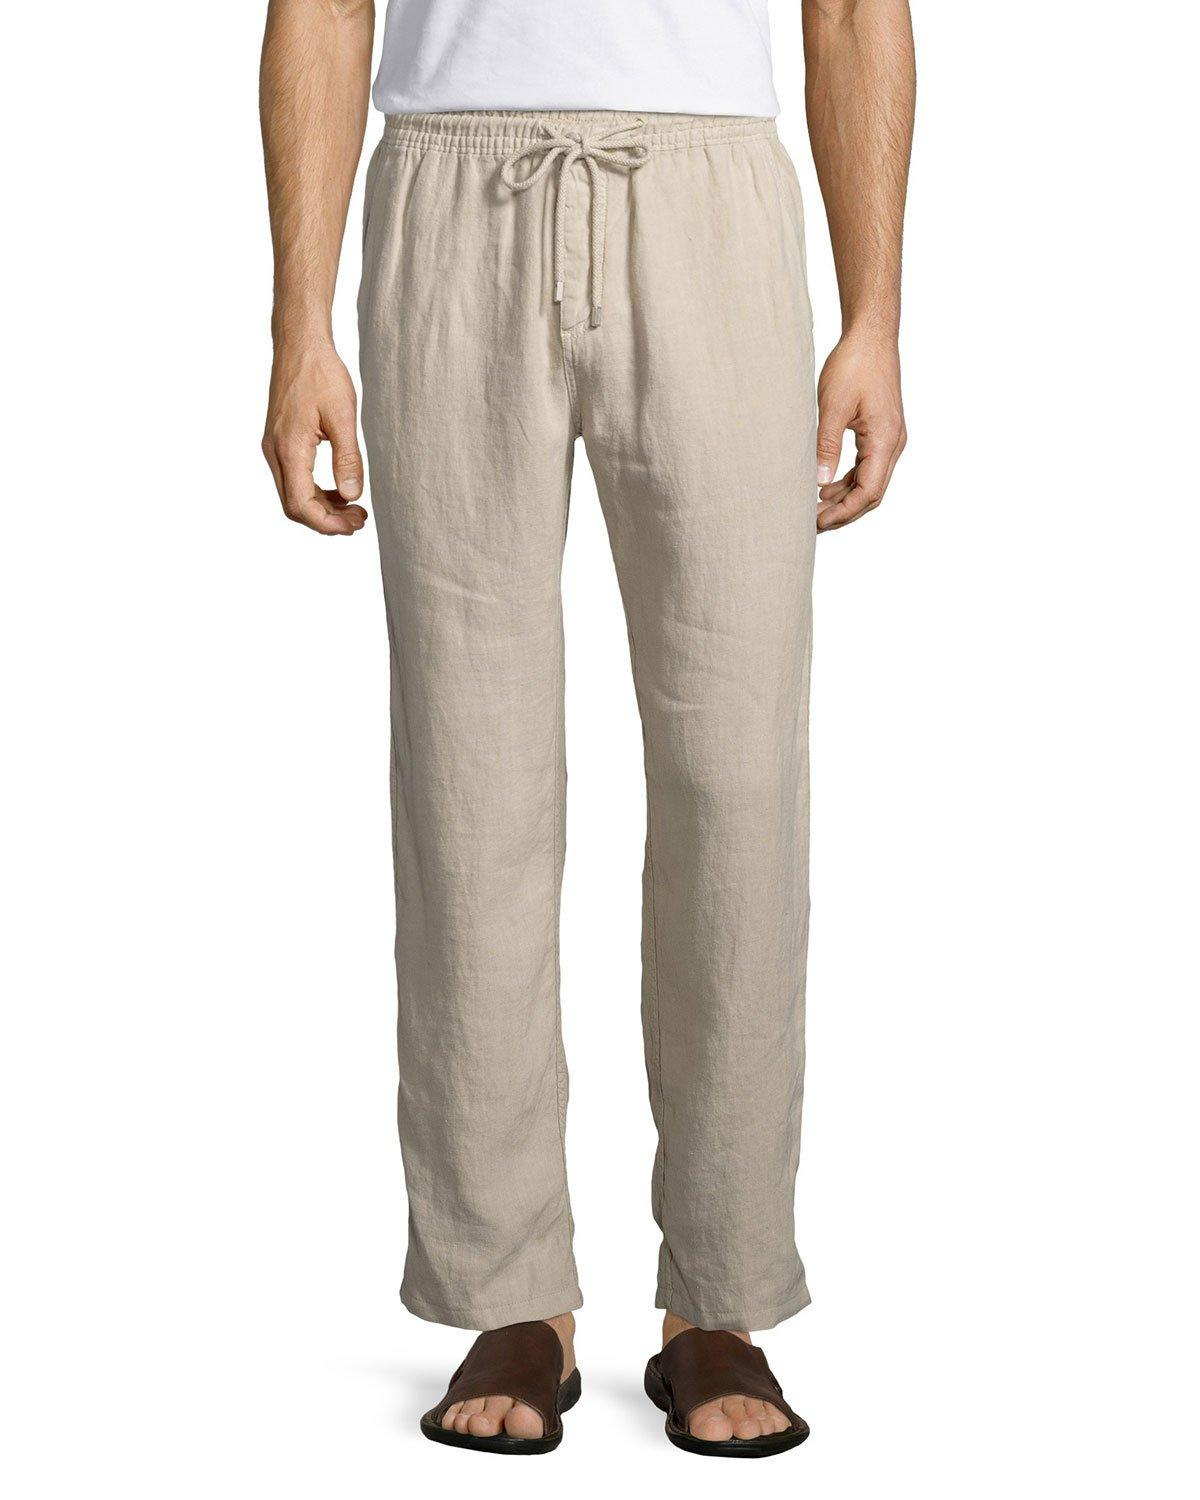 Linen blend drawstring pants for men. Most customers used this Pants at traveling to Cuba or the Caribbean, cruise attire, a night in Havana, great beach chic attire and resort allshop-eqe0tr01.cfry: Pants.